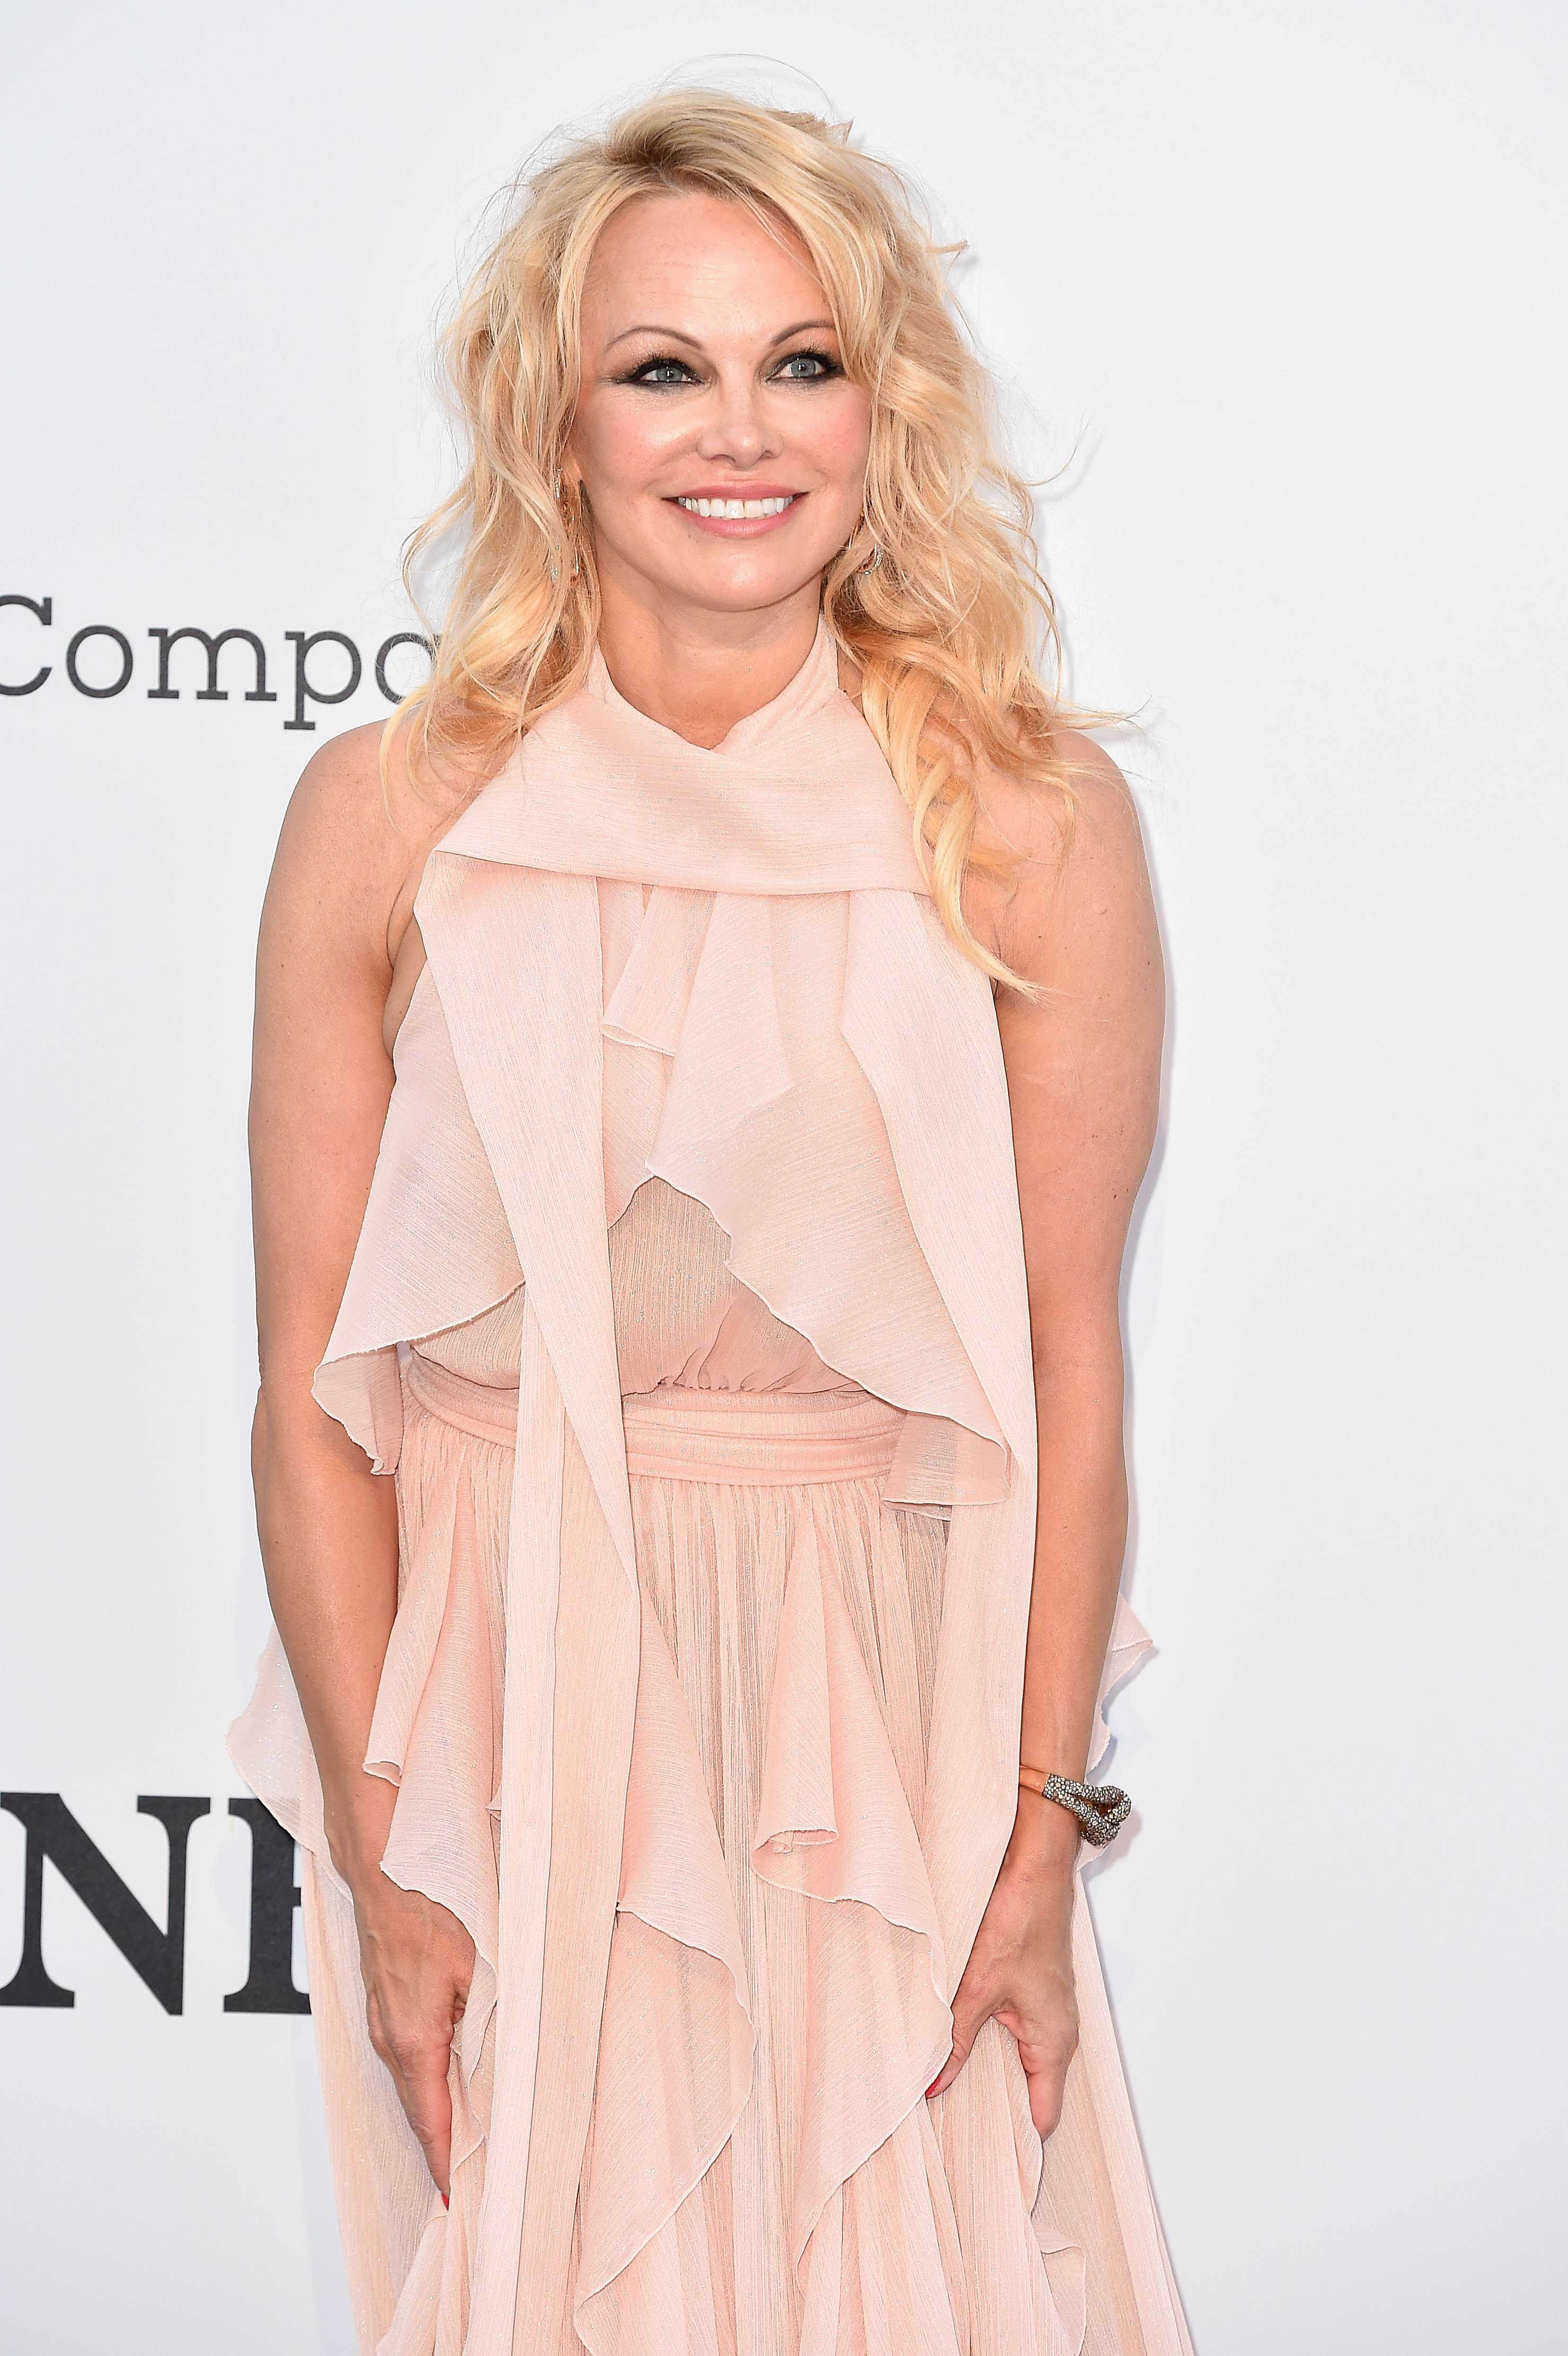 Pamela Anderson at the amfAR gala | Photo: Getty Images